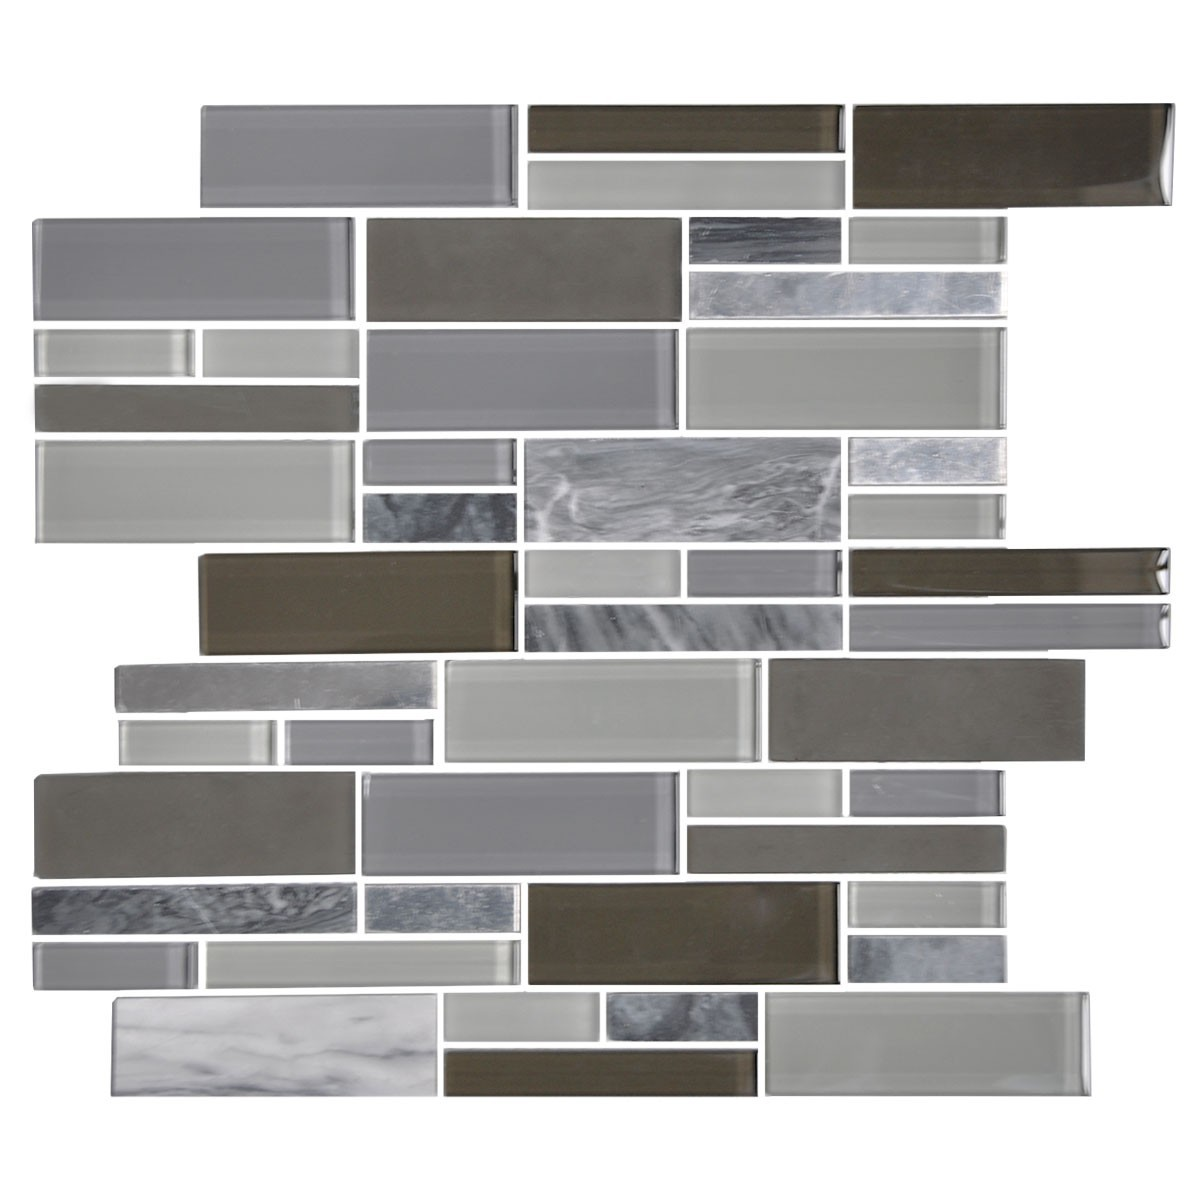 14.2 in. x 11.8 in. Glass and Stone Blend Strip Mosaic Tile - 8mm Thickness (DK-AD806044)